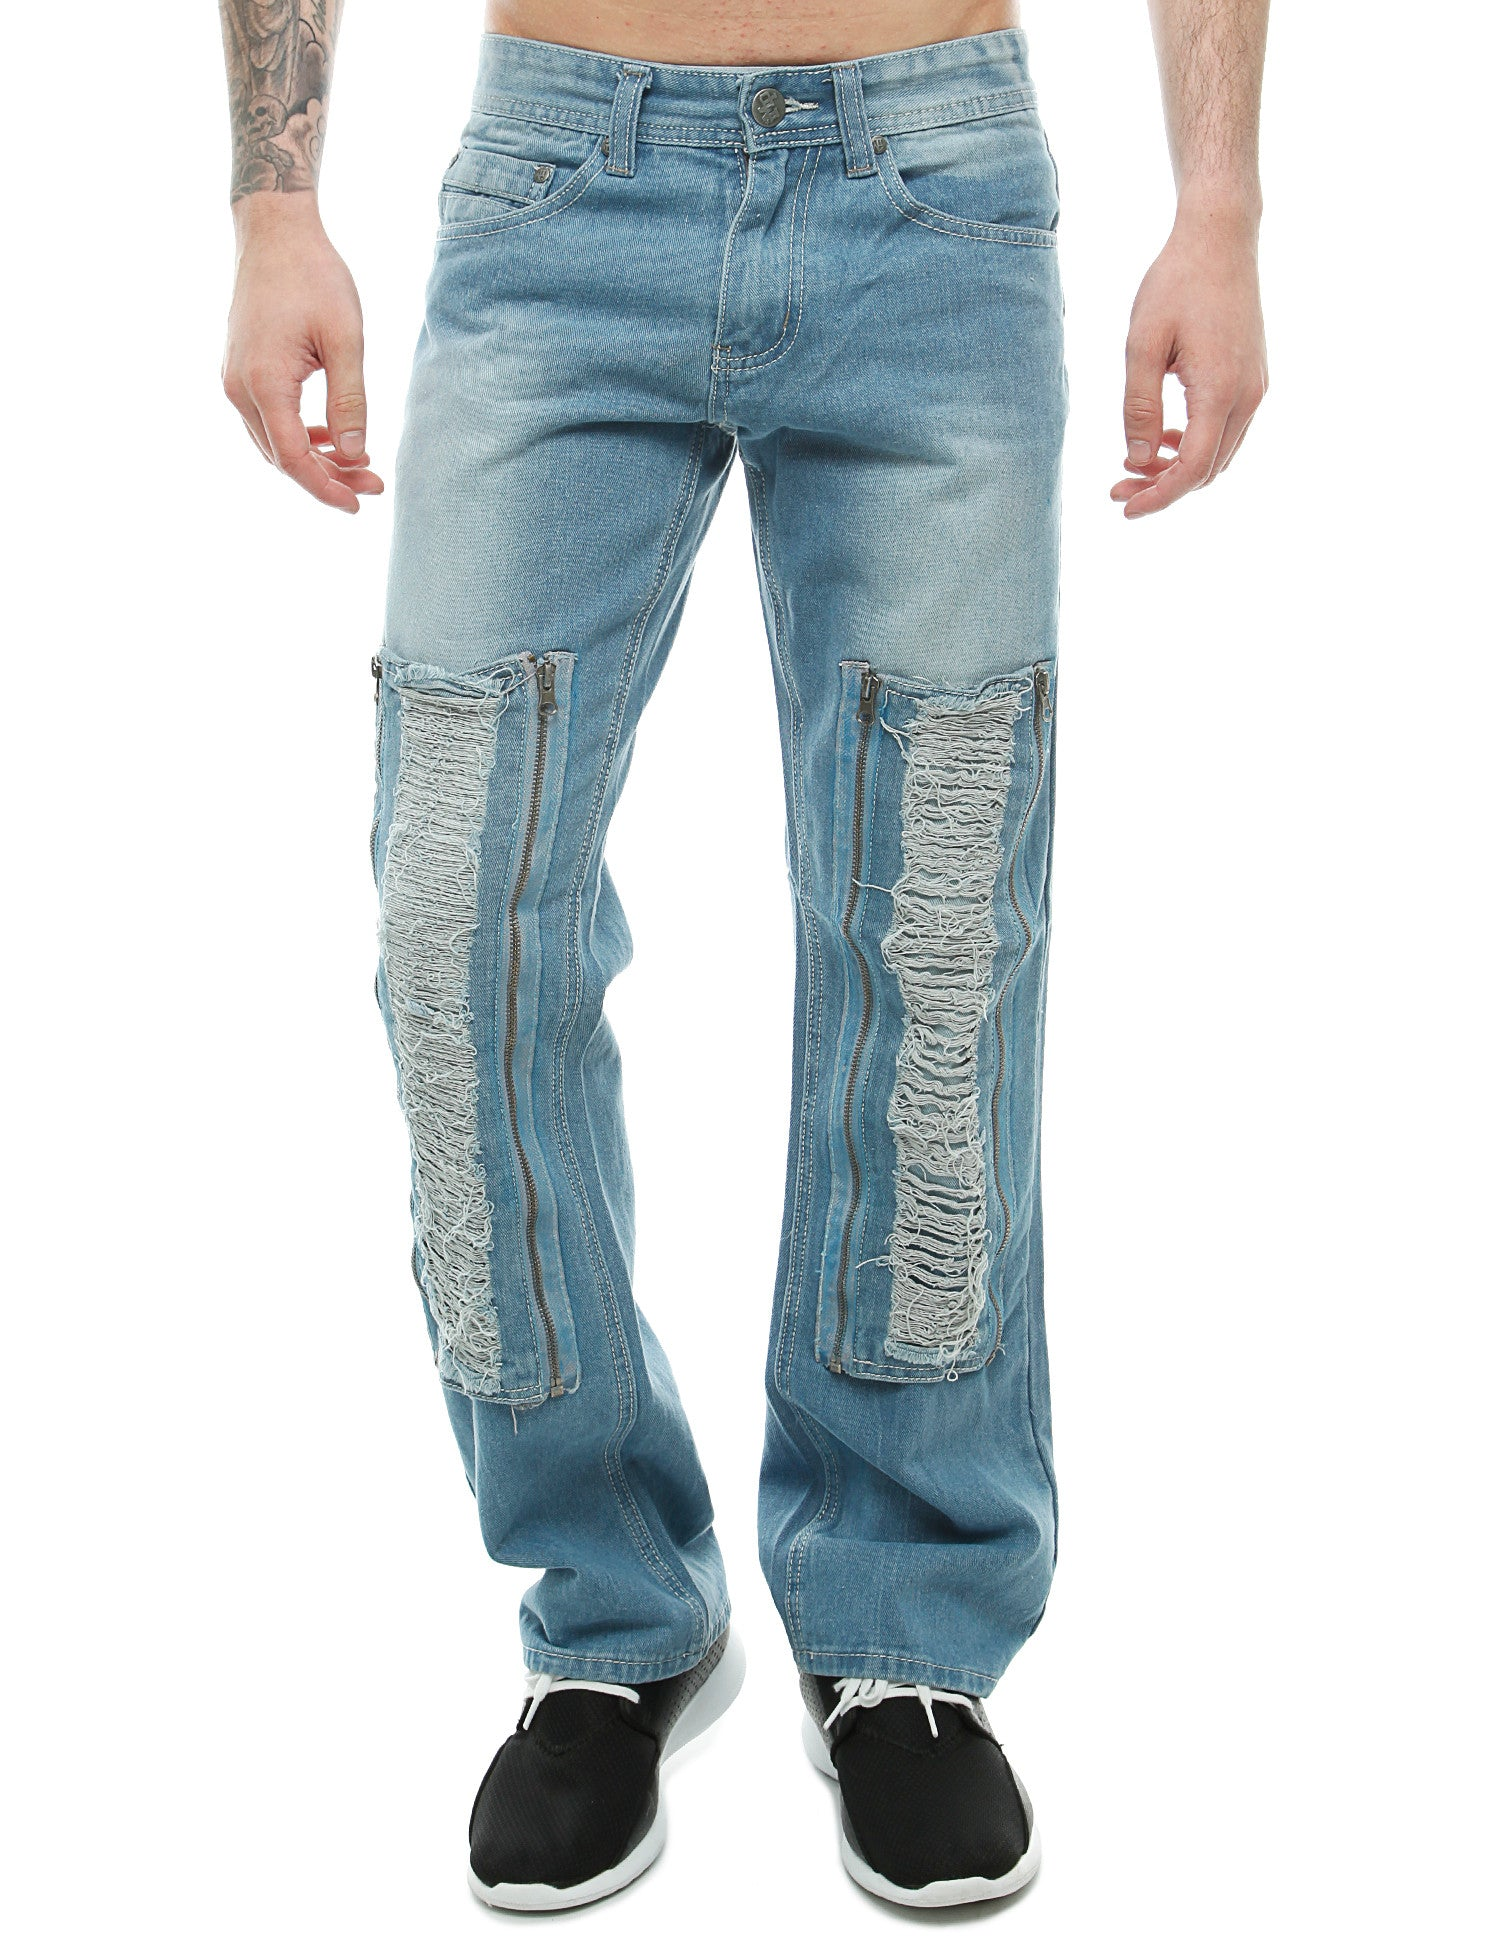 Imperious Rip W/ Zipper Patched Jeans Lt. Blue